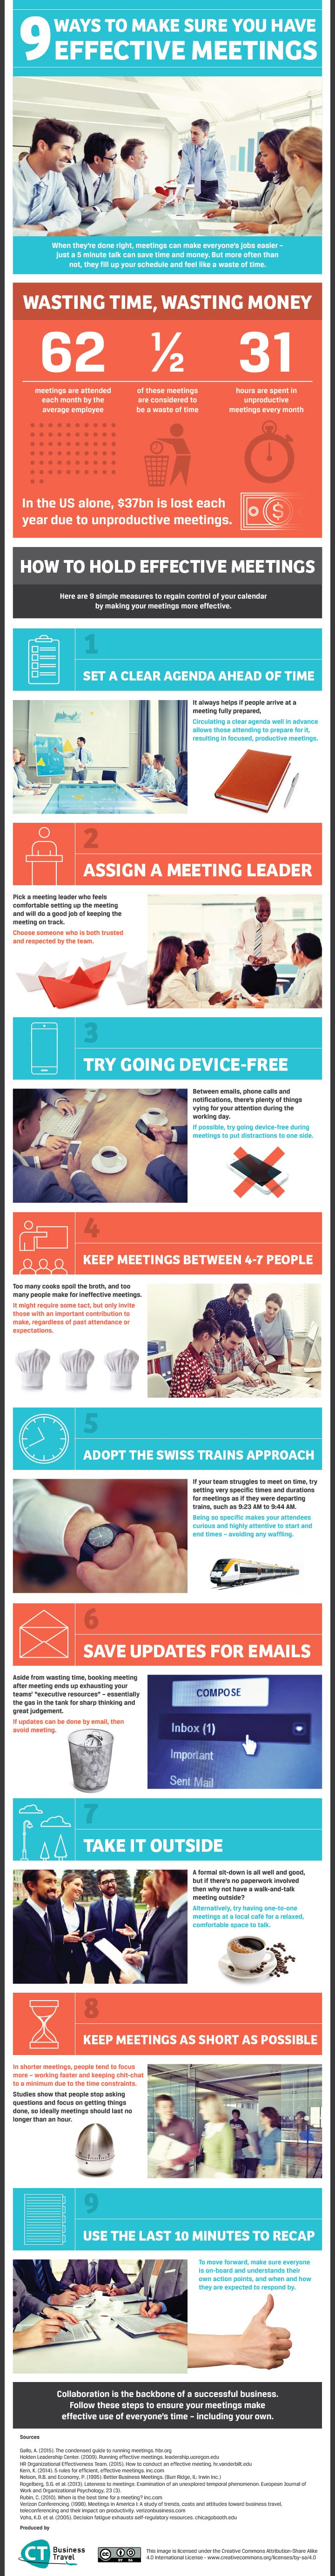 Efective meetings (Infographic)